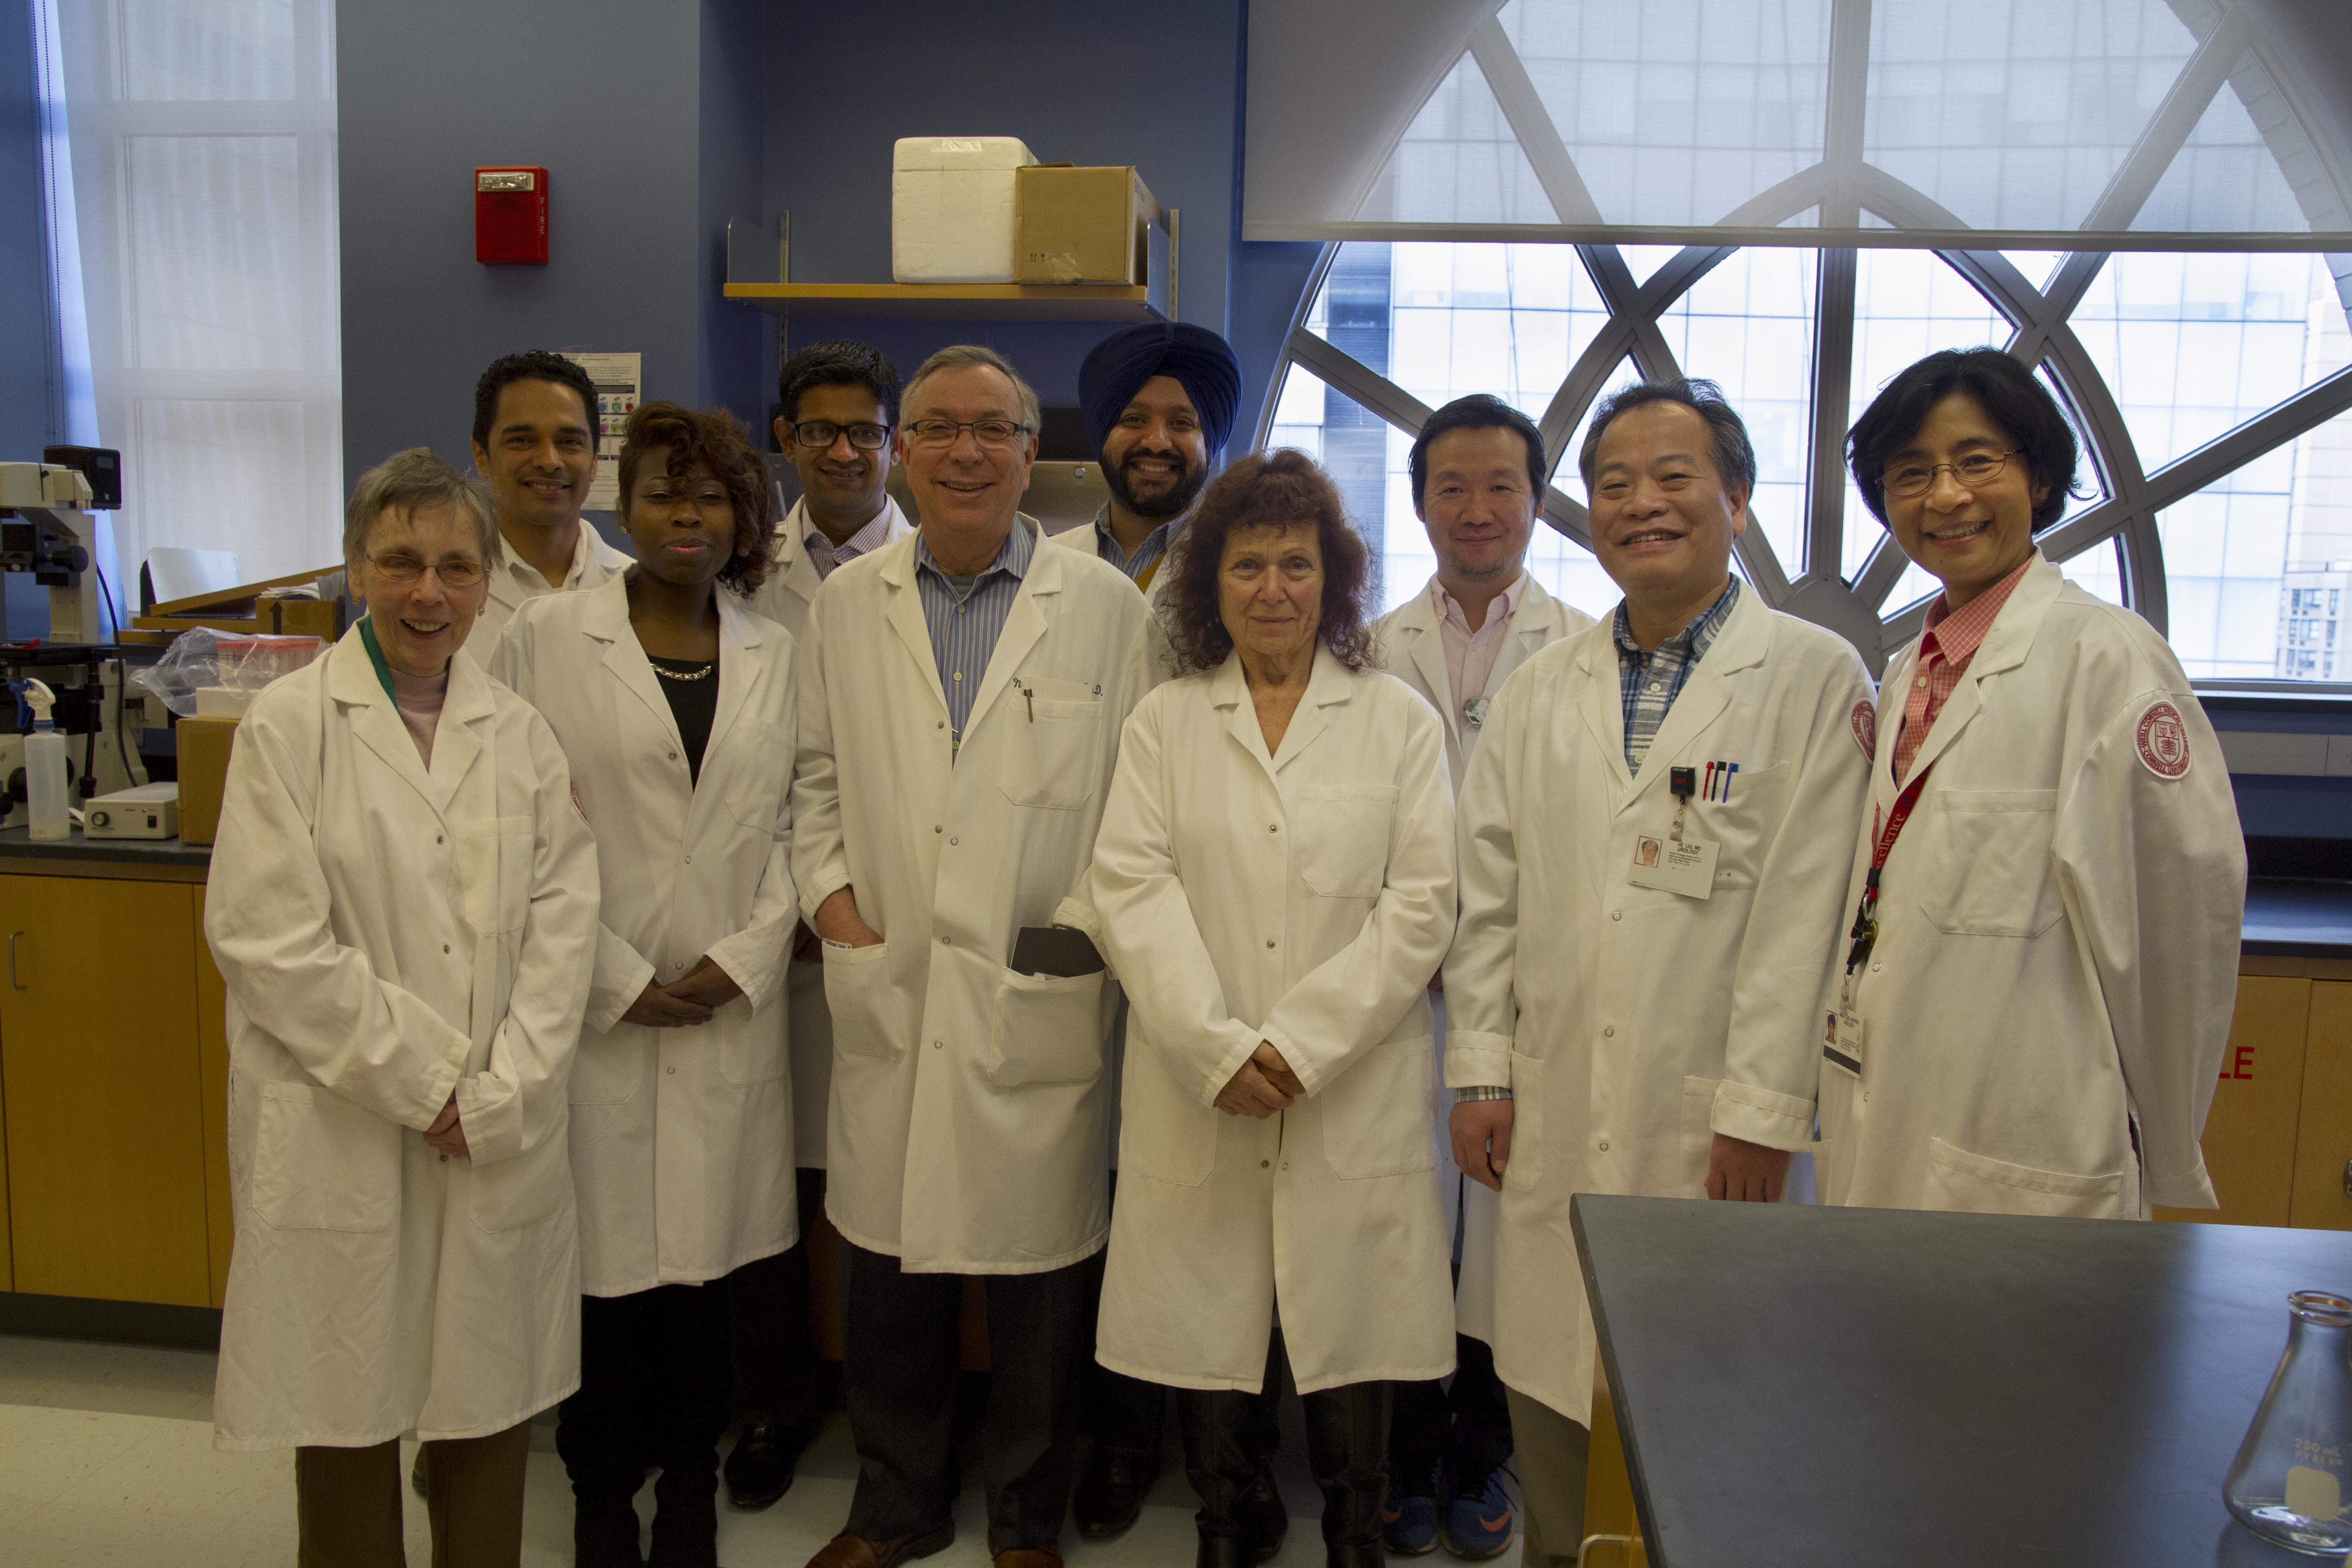 Dr. Neil Bander & Research Team